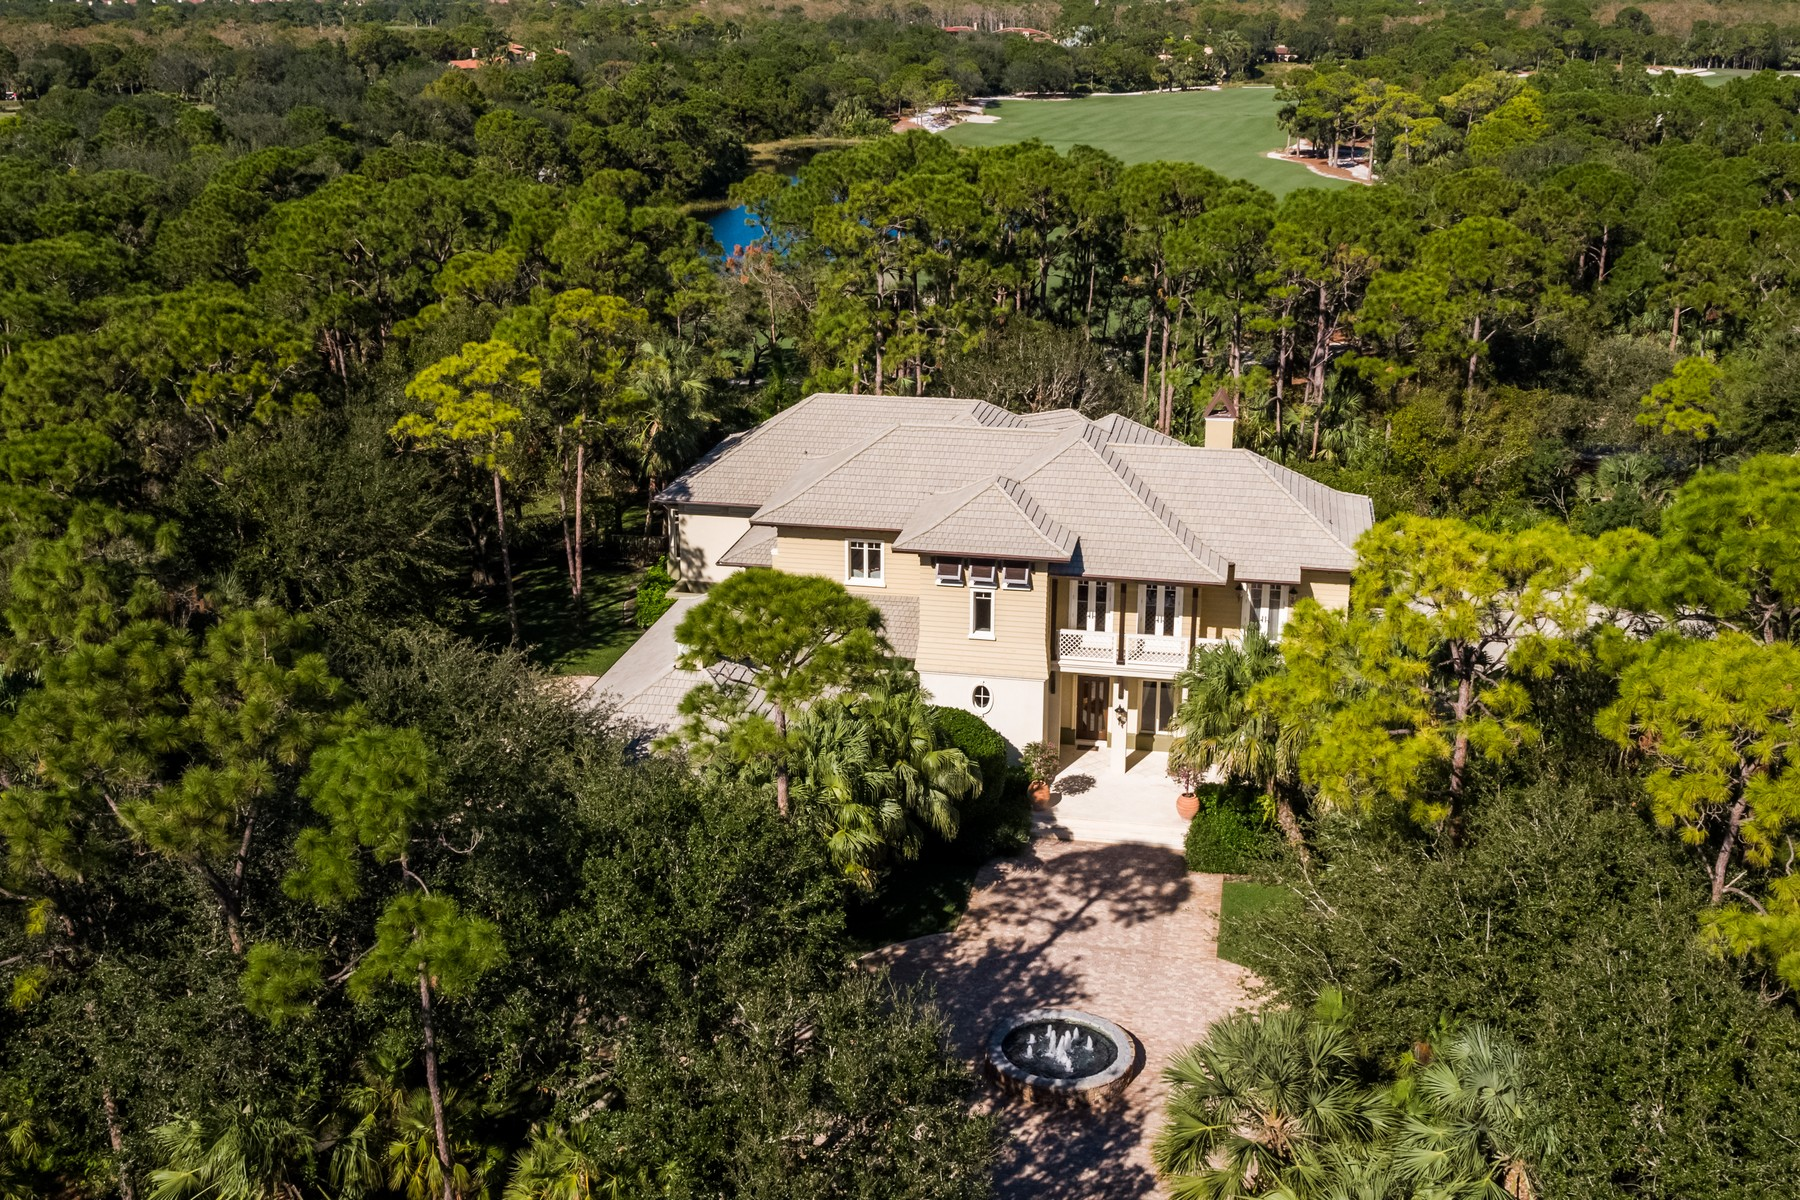 Single Family Home for Sale at 110 Bear's Club Drive at The Bear's Club Jupiter, Florida 33477 United States